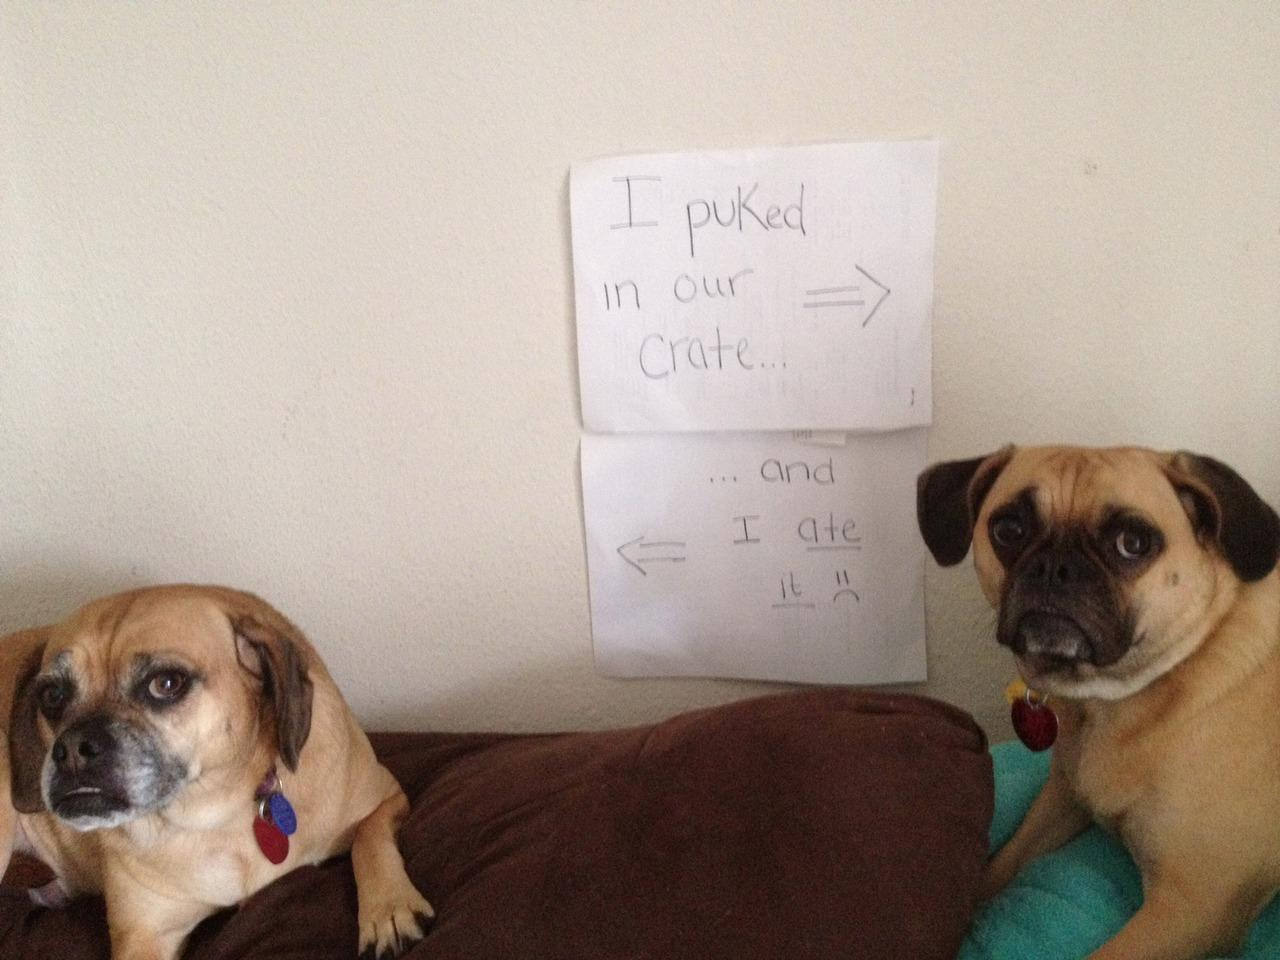 Pics Photos   20 Bad Dogs Being Shamed With Signs Og4QgoGl